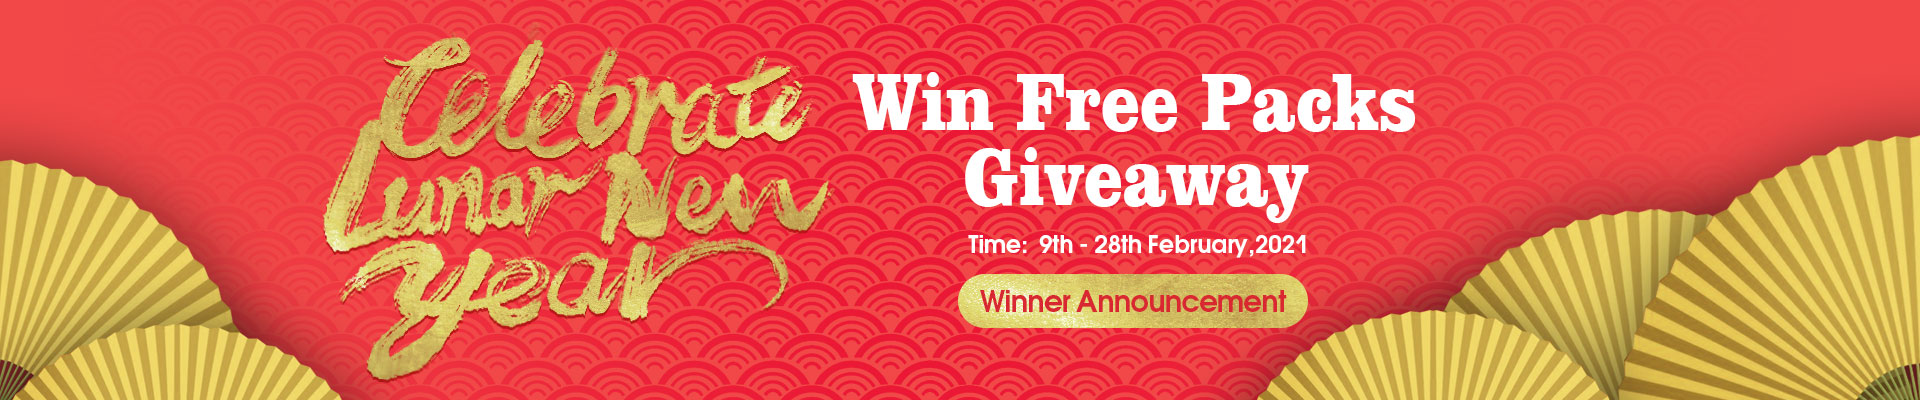 Celebrate Lunar New Year & Win Free Packs Giveaway